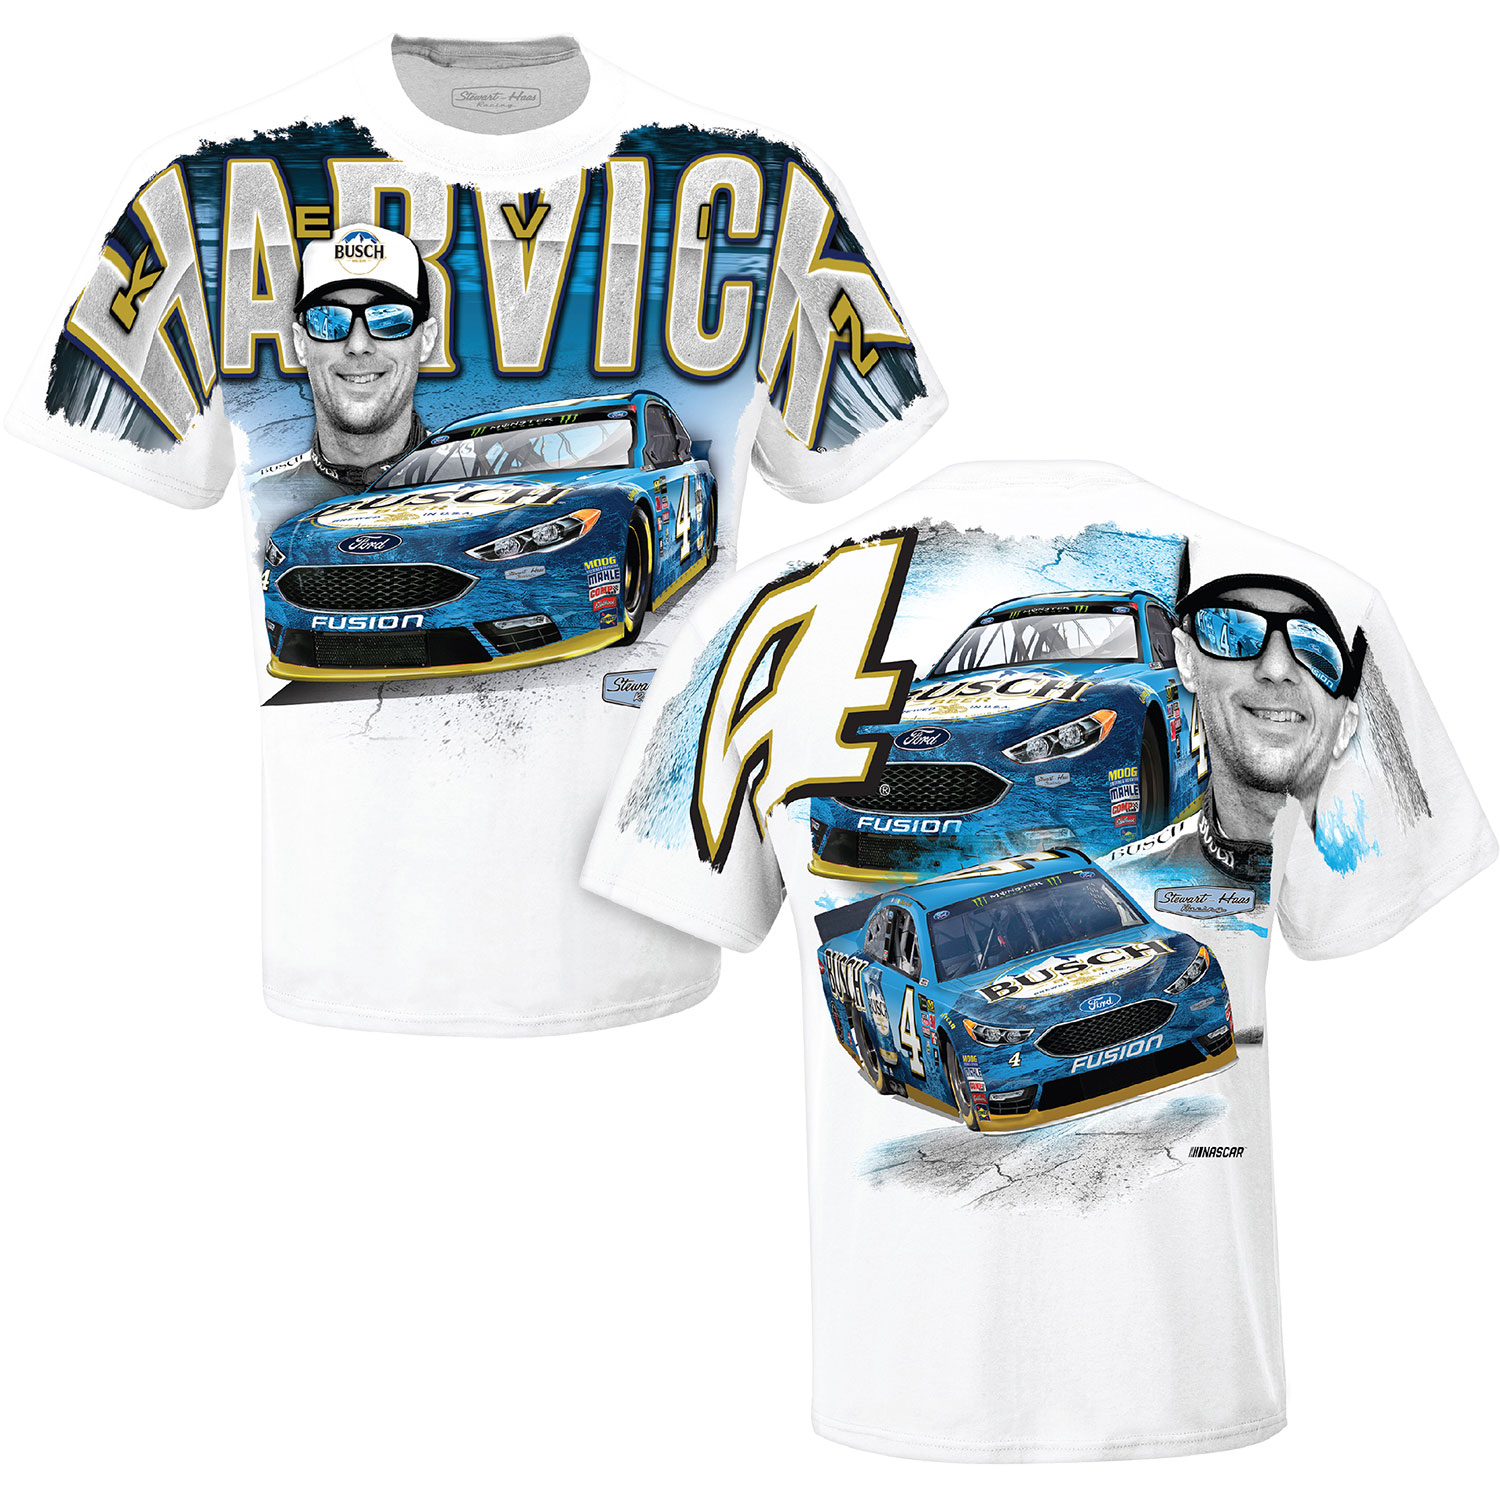 Kevin Harvick Stewart-Haas Racing Team Collection Busch Total Print T-Shirt - White